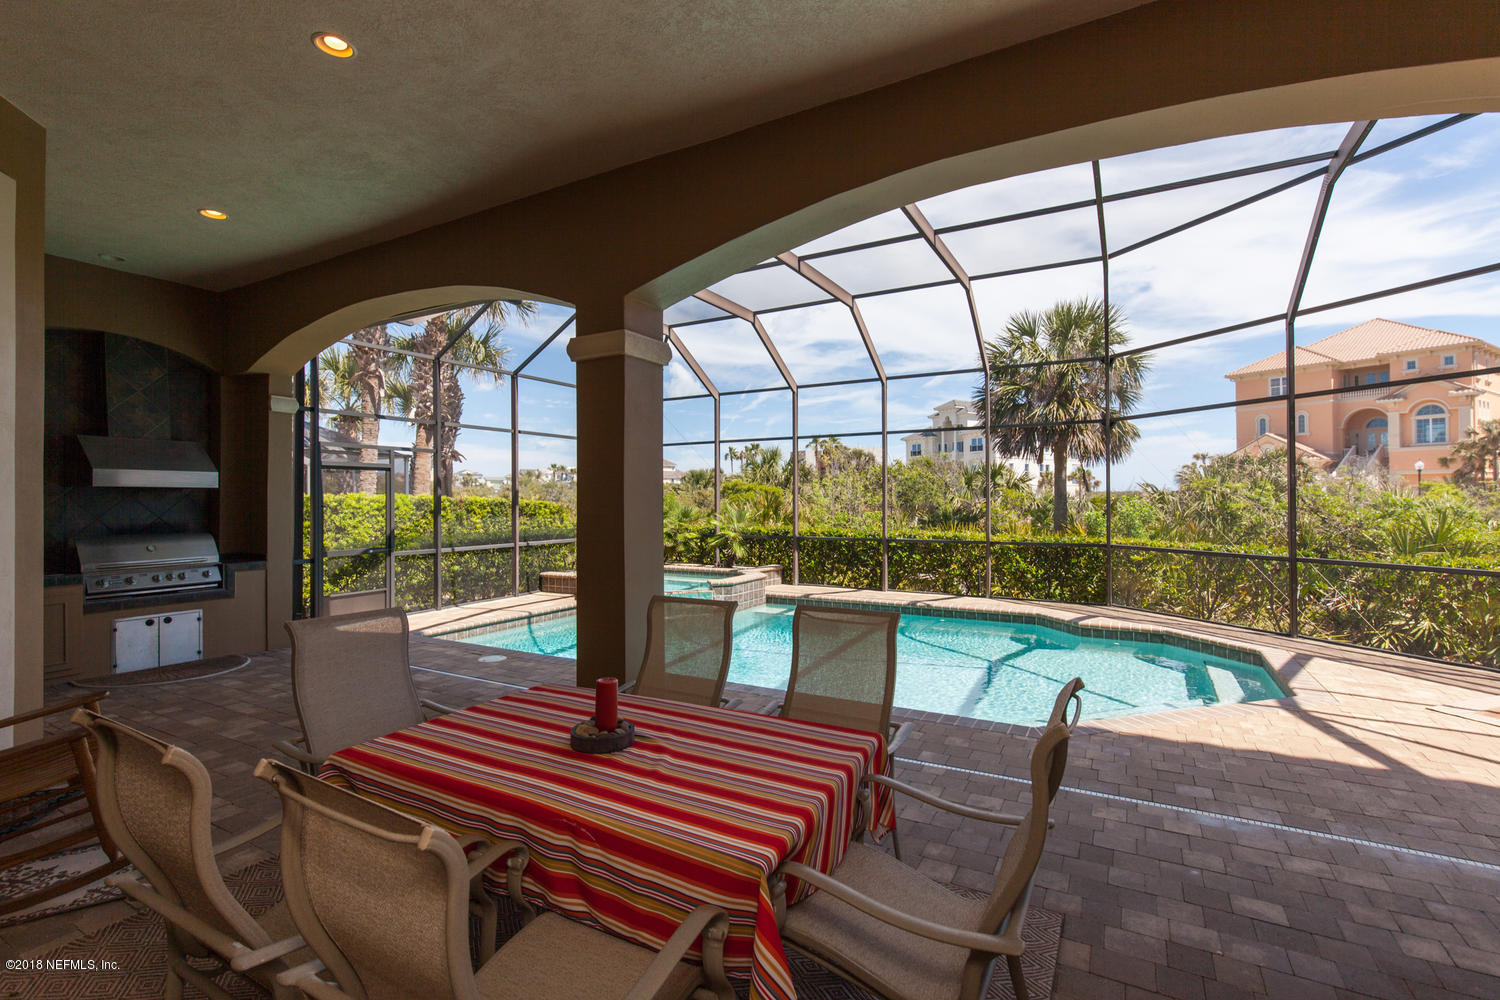 39 SANDPIPER, PALM COAST, FLORIDA 32137, 3 Bedrooms Bedrooms, ,3 BathroomsBathrooms,Residential - single family,For sale,SANDPIPER,929611